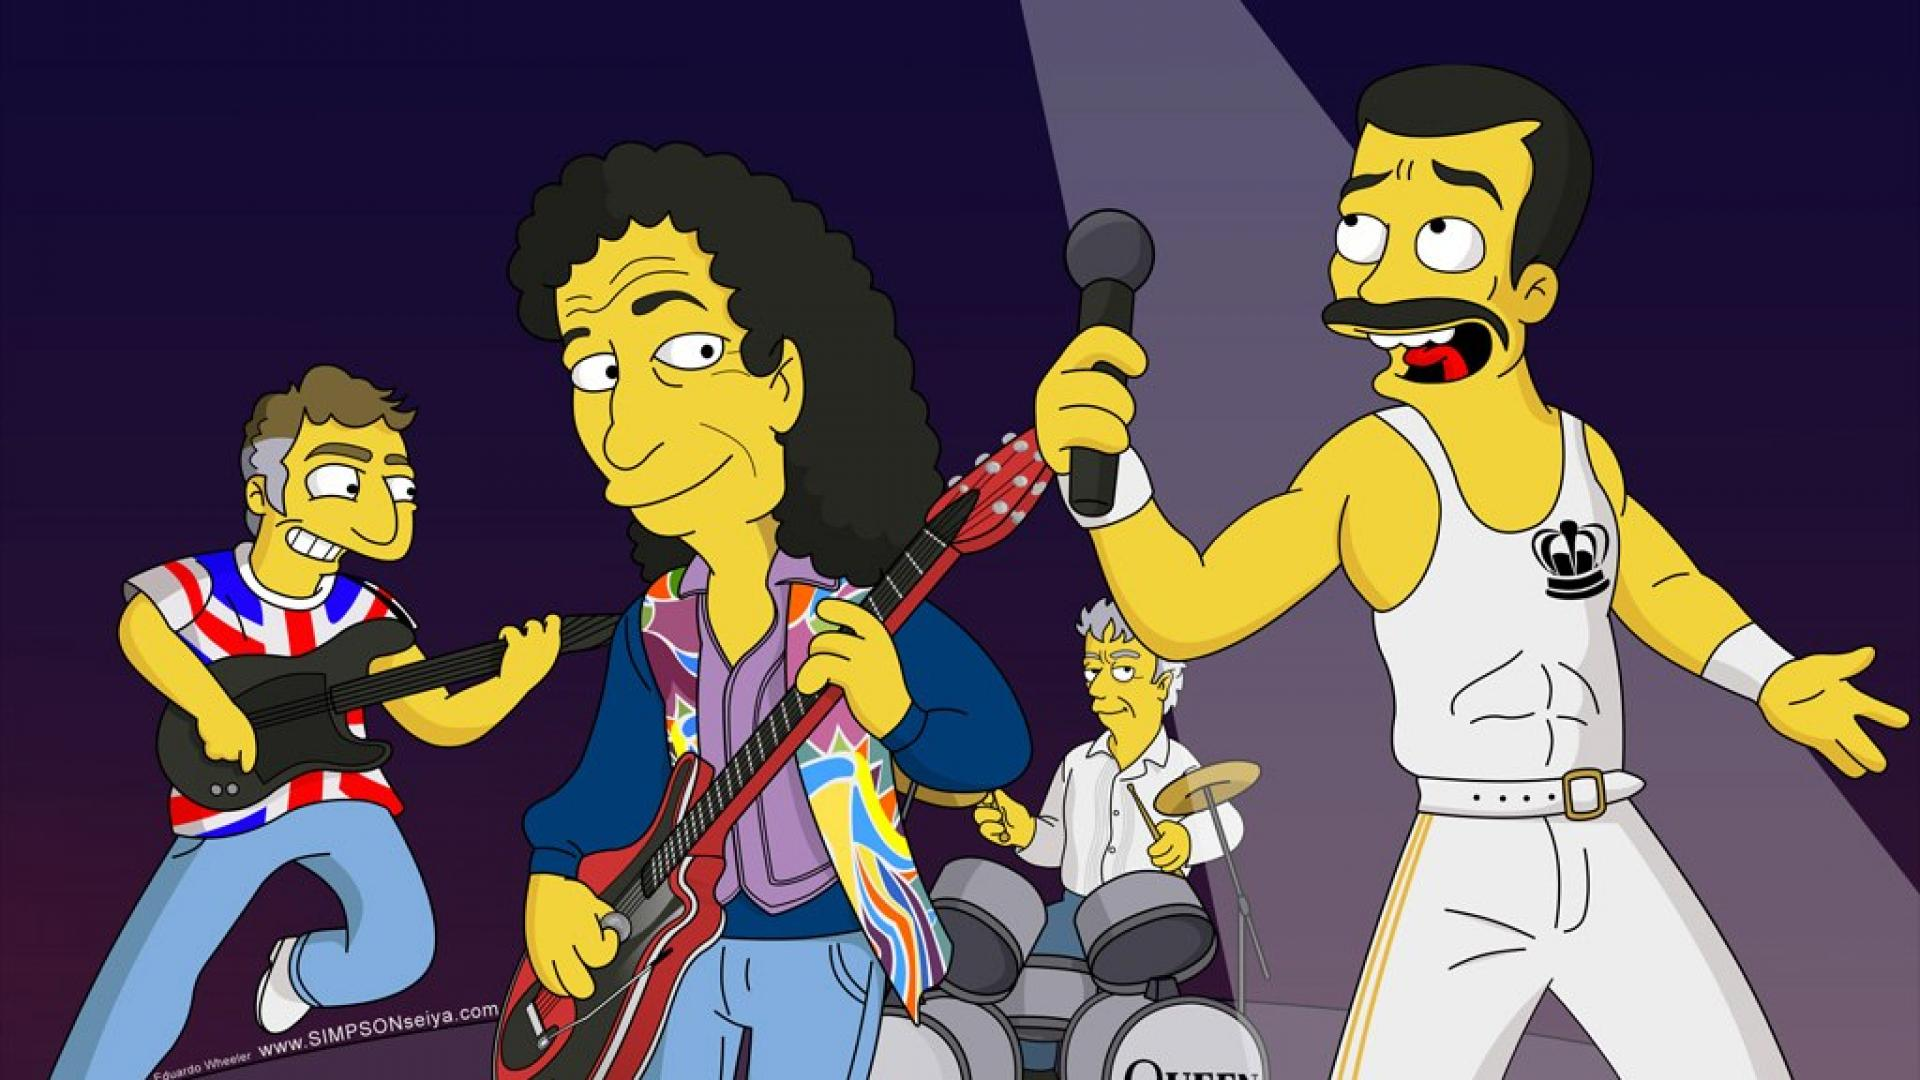 1920x1080_queen-simpsons-cartoon-music-HD-Wallpaper